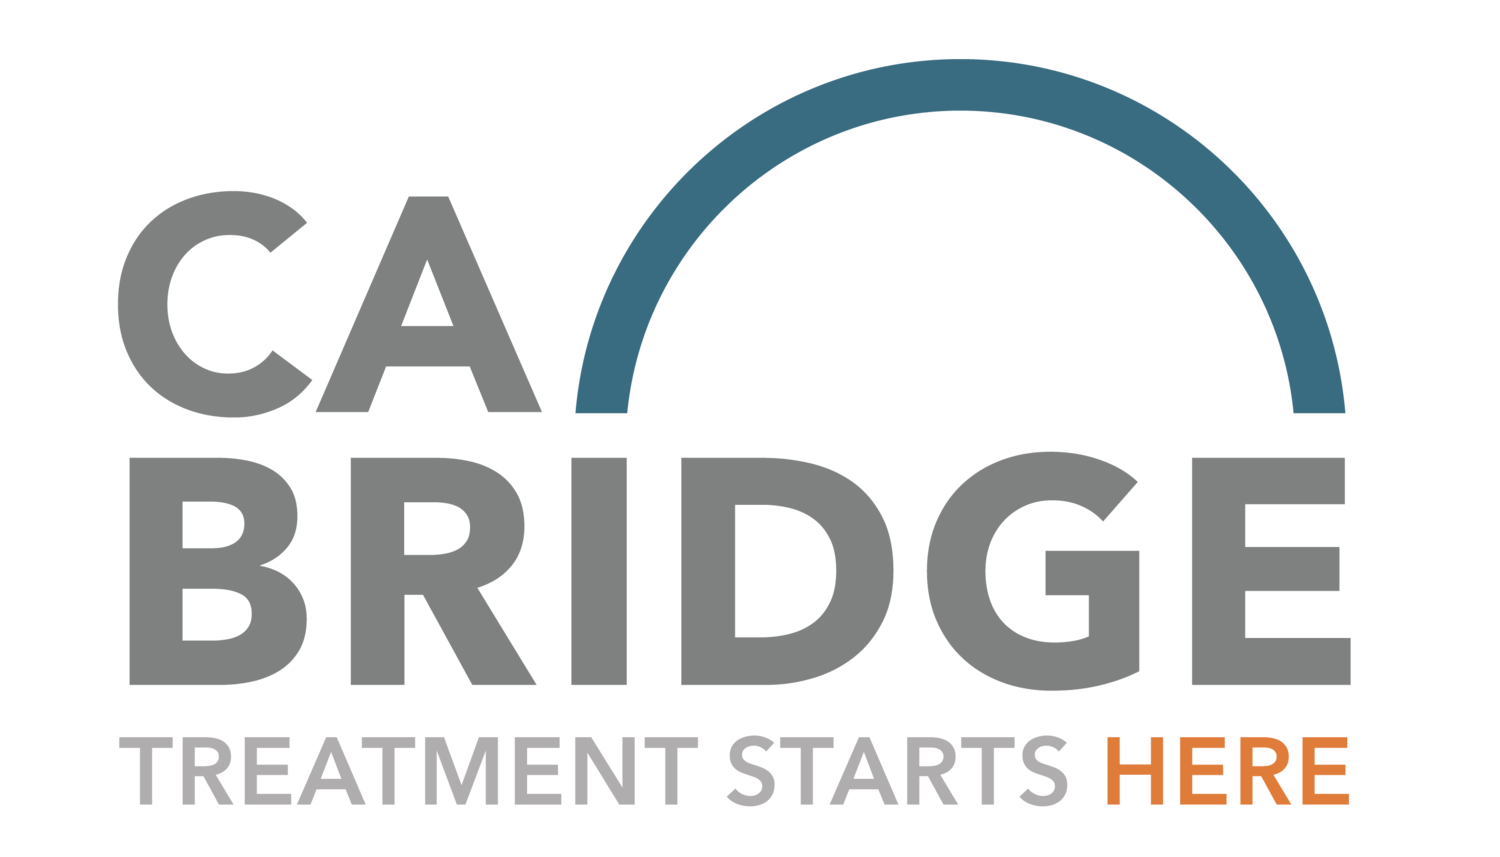 BRIDGE - Treatment Starts Here